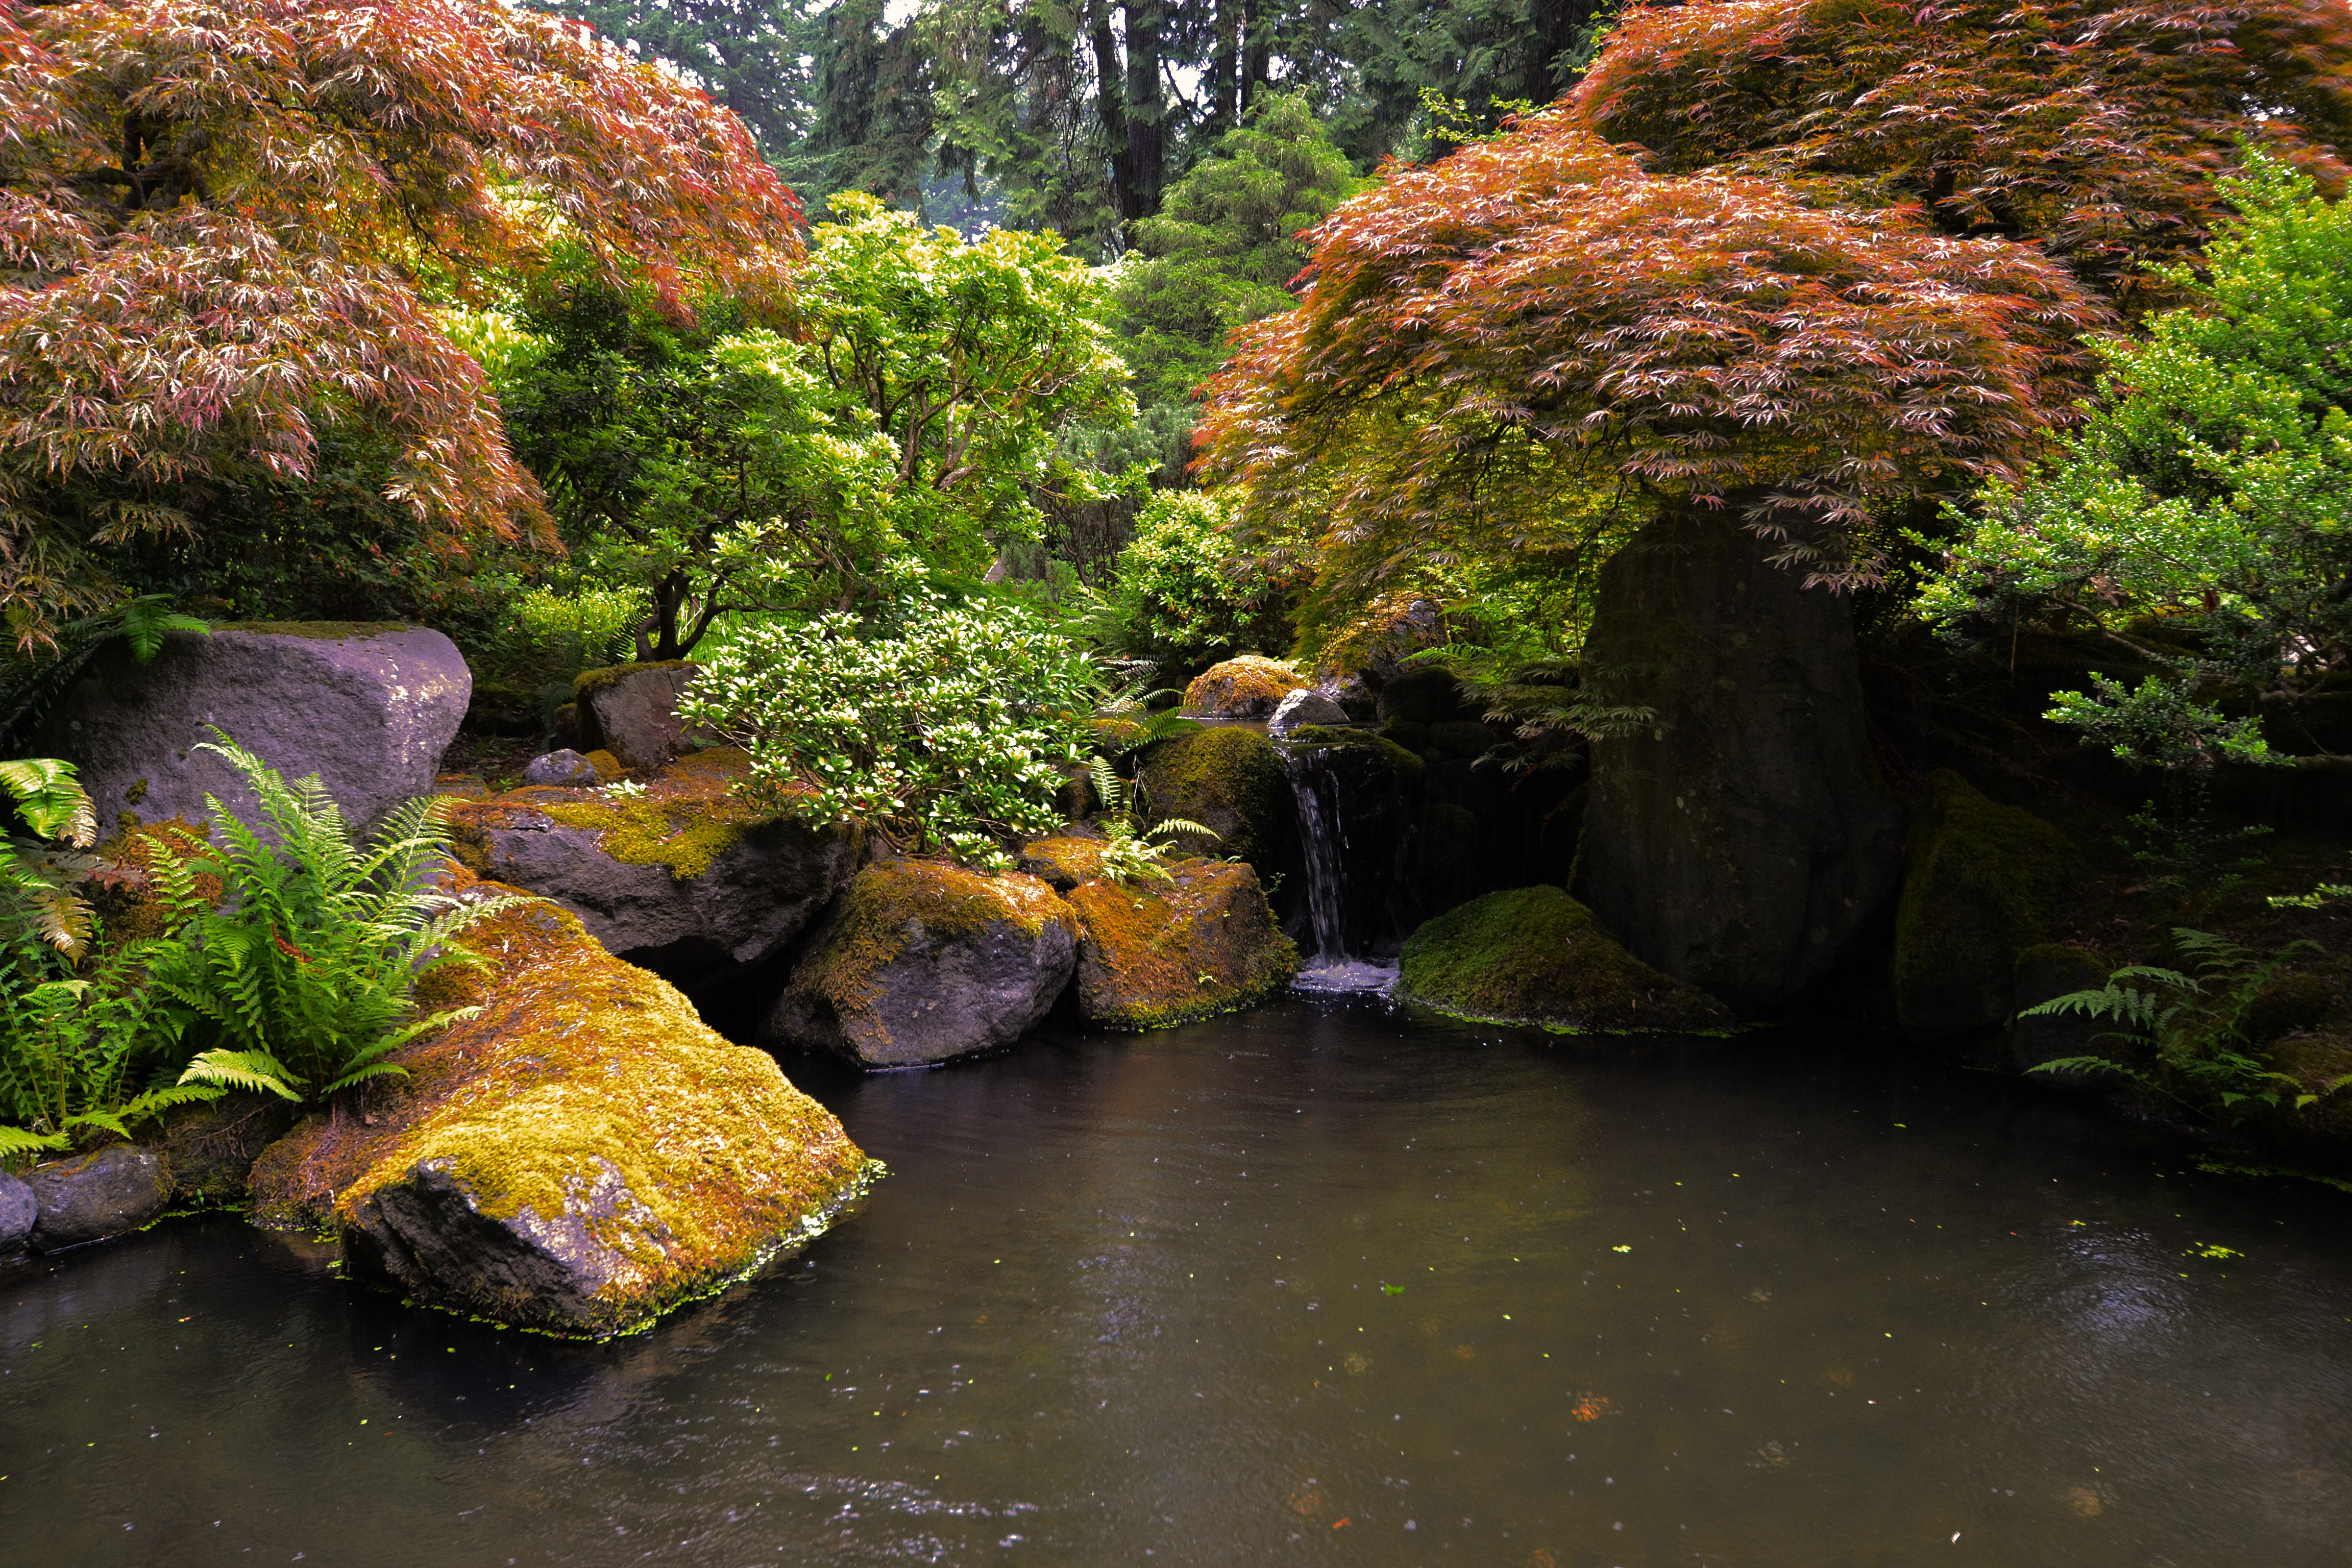 rainy day at portland s ese garden photo essay peregrination ese pool and cascade